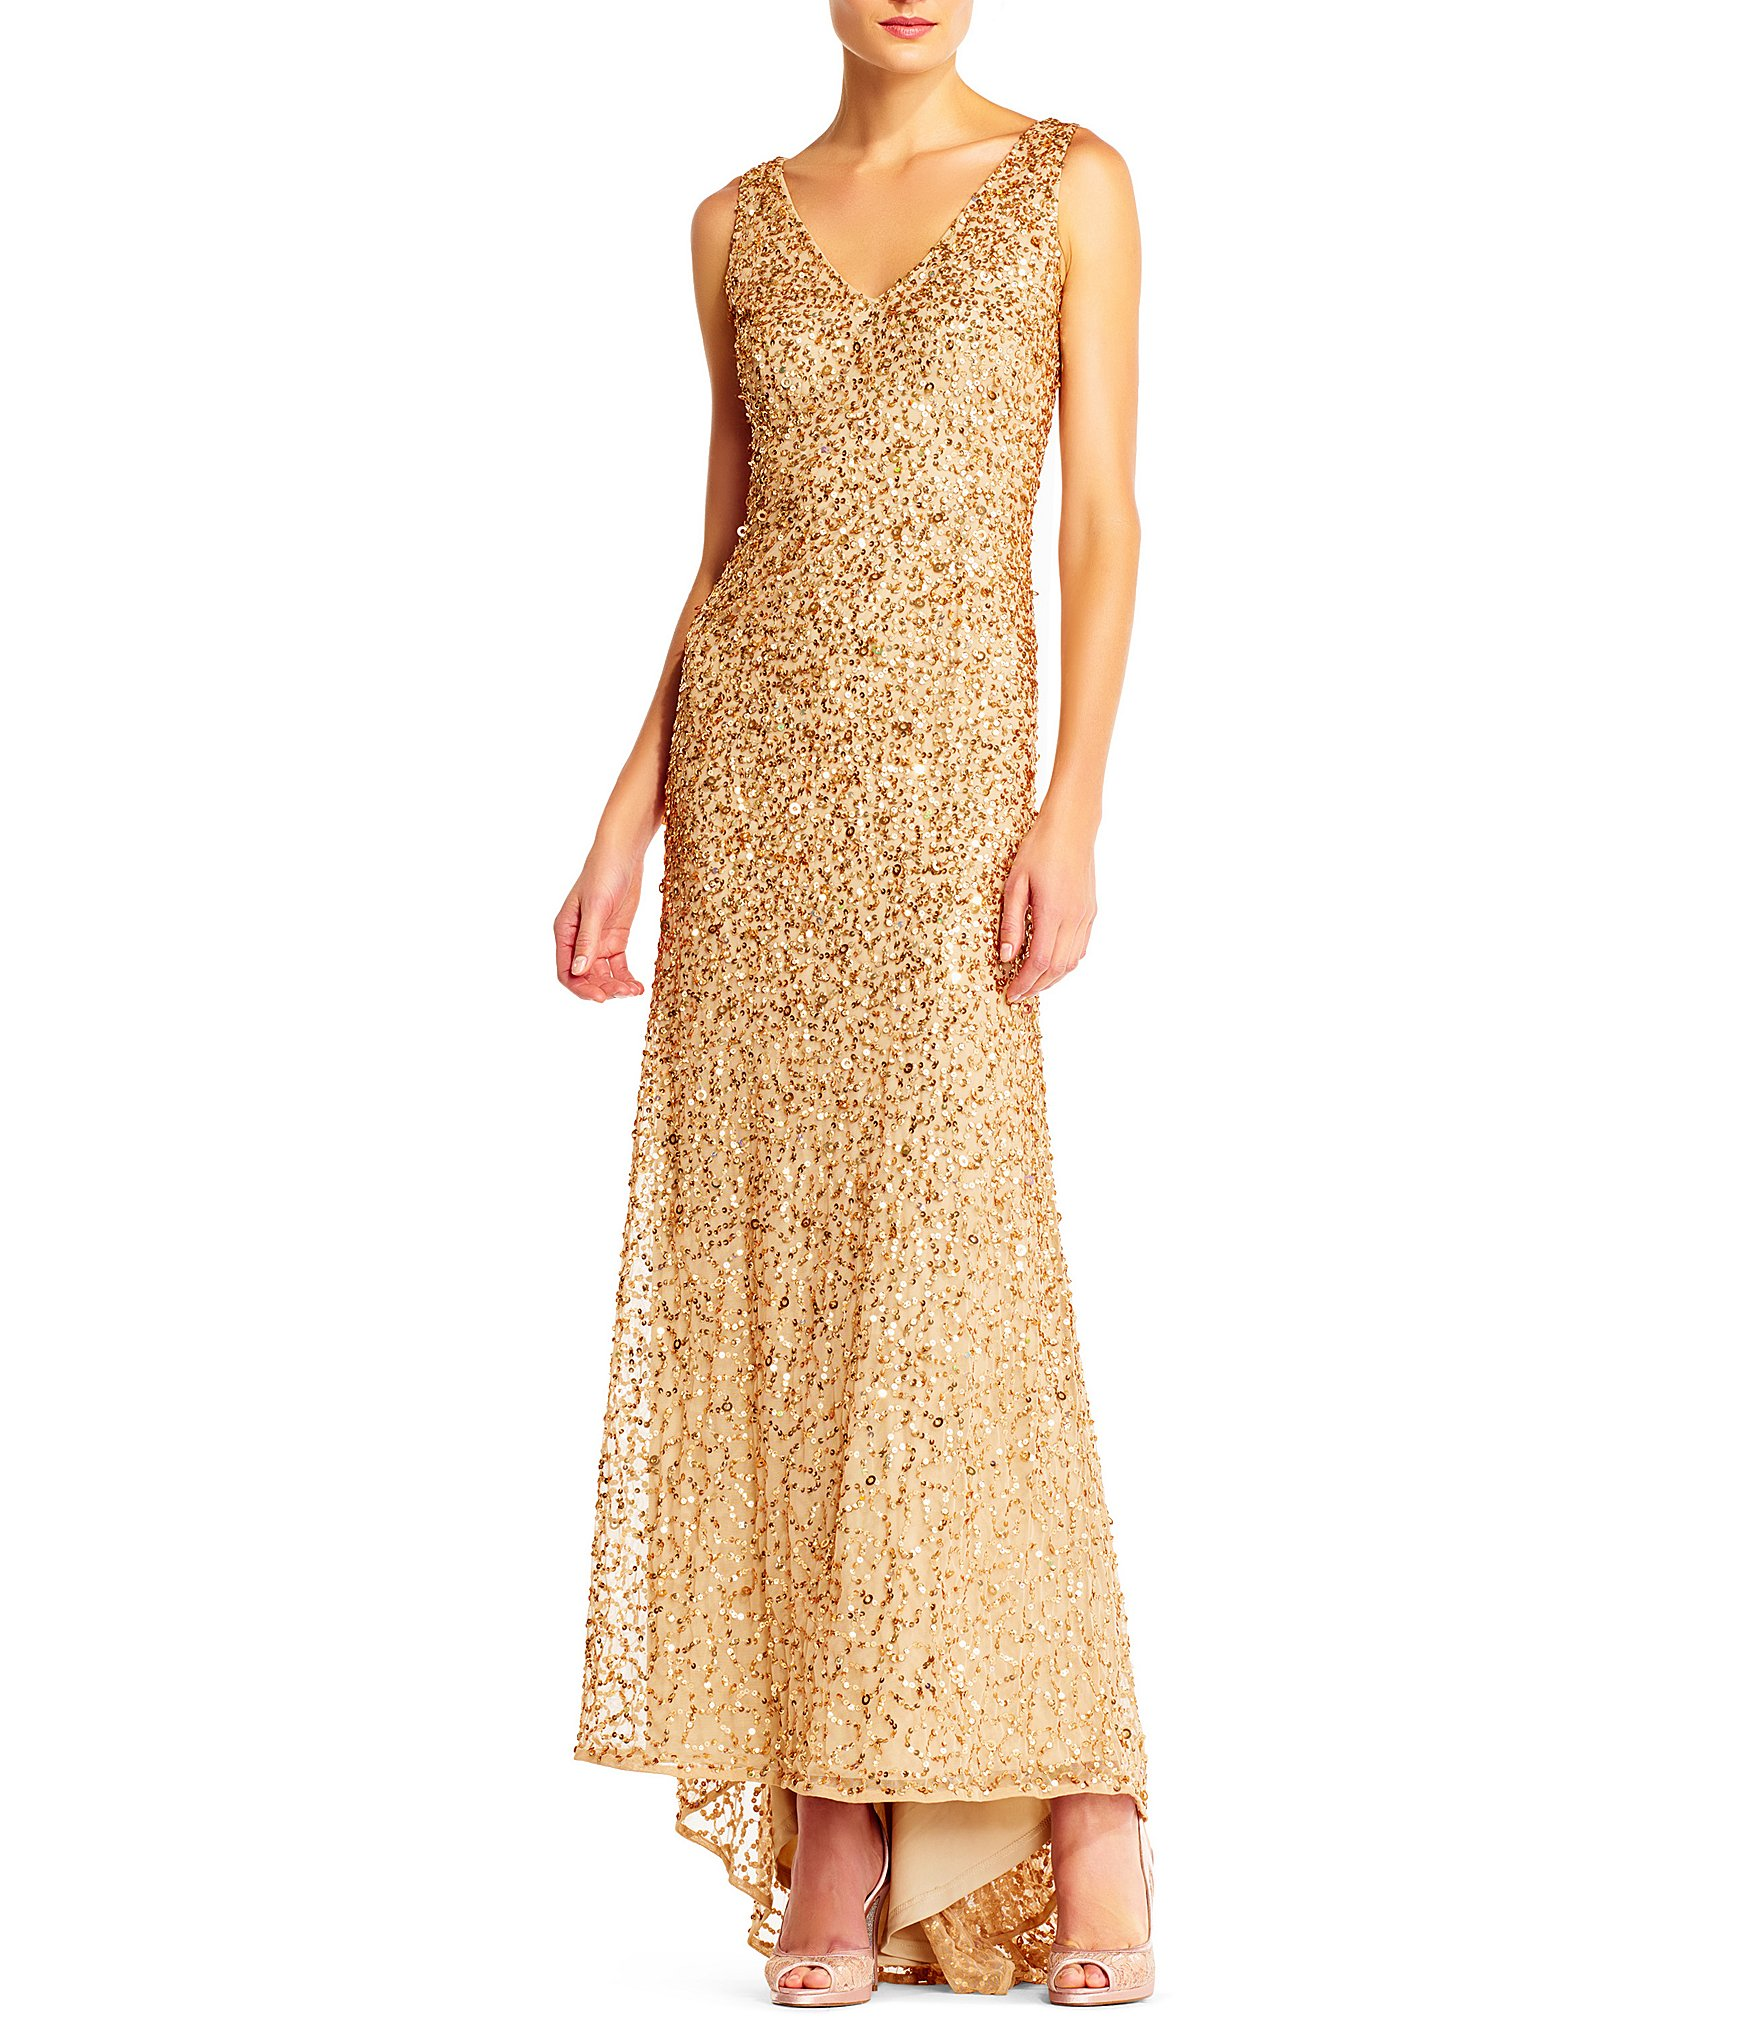 Dillard's Clearance Mother of the Bride Evening Dresses